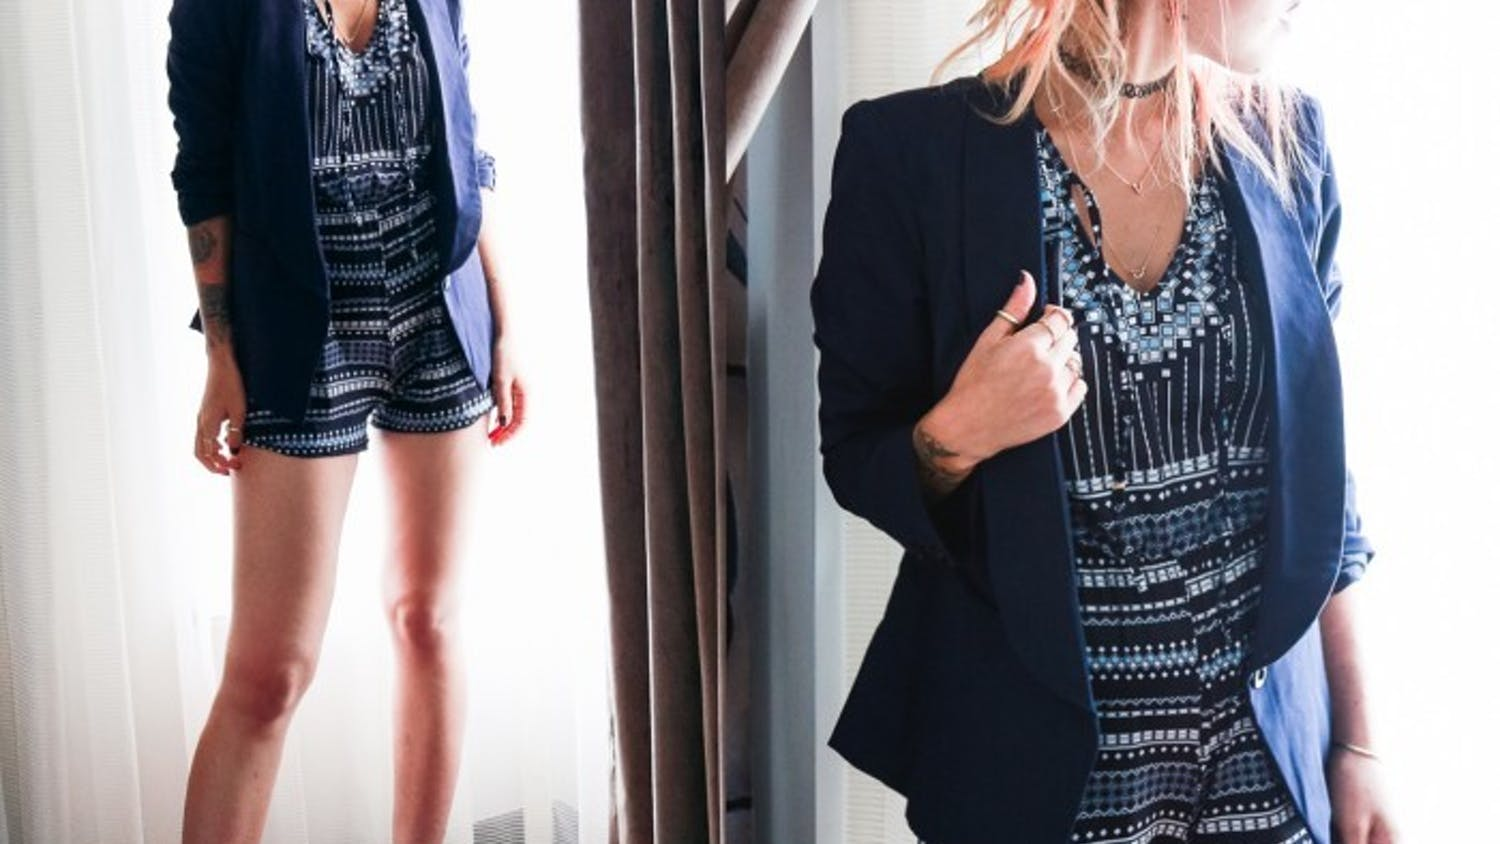 Luanna P's style is all about layering--shirts under shirts, all under jackets.